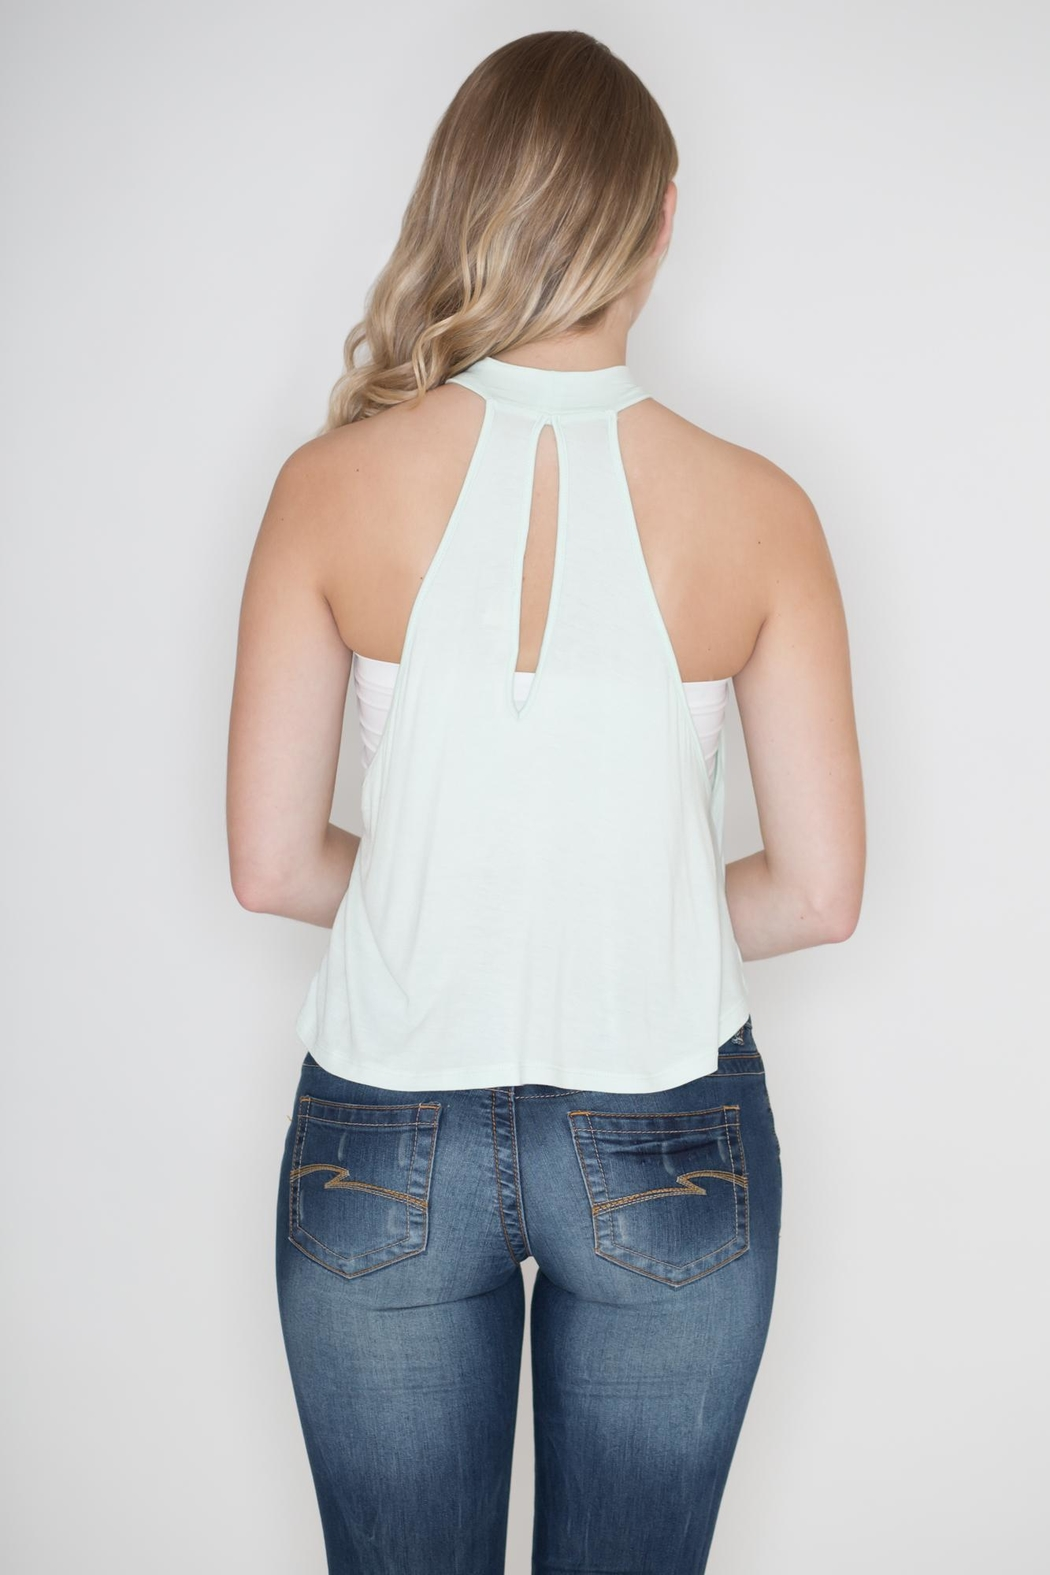 Zenana Outfitters Keyhole Crop Top - Side Cropped Image